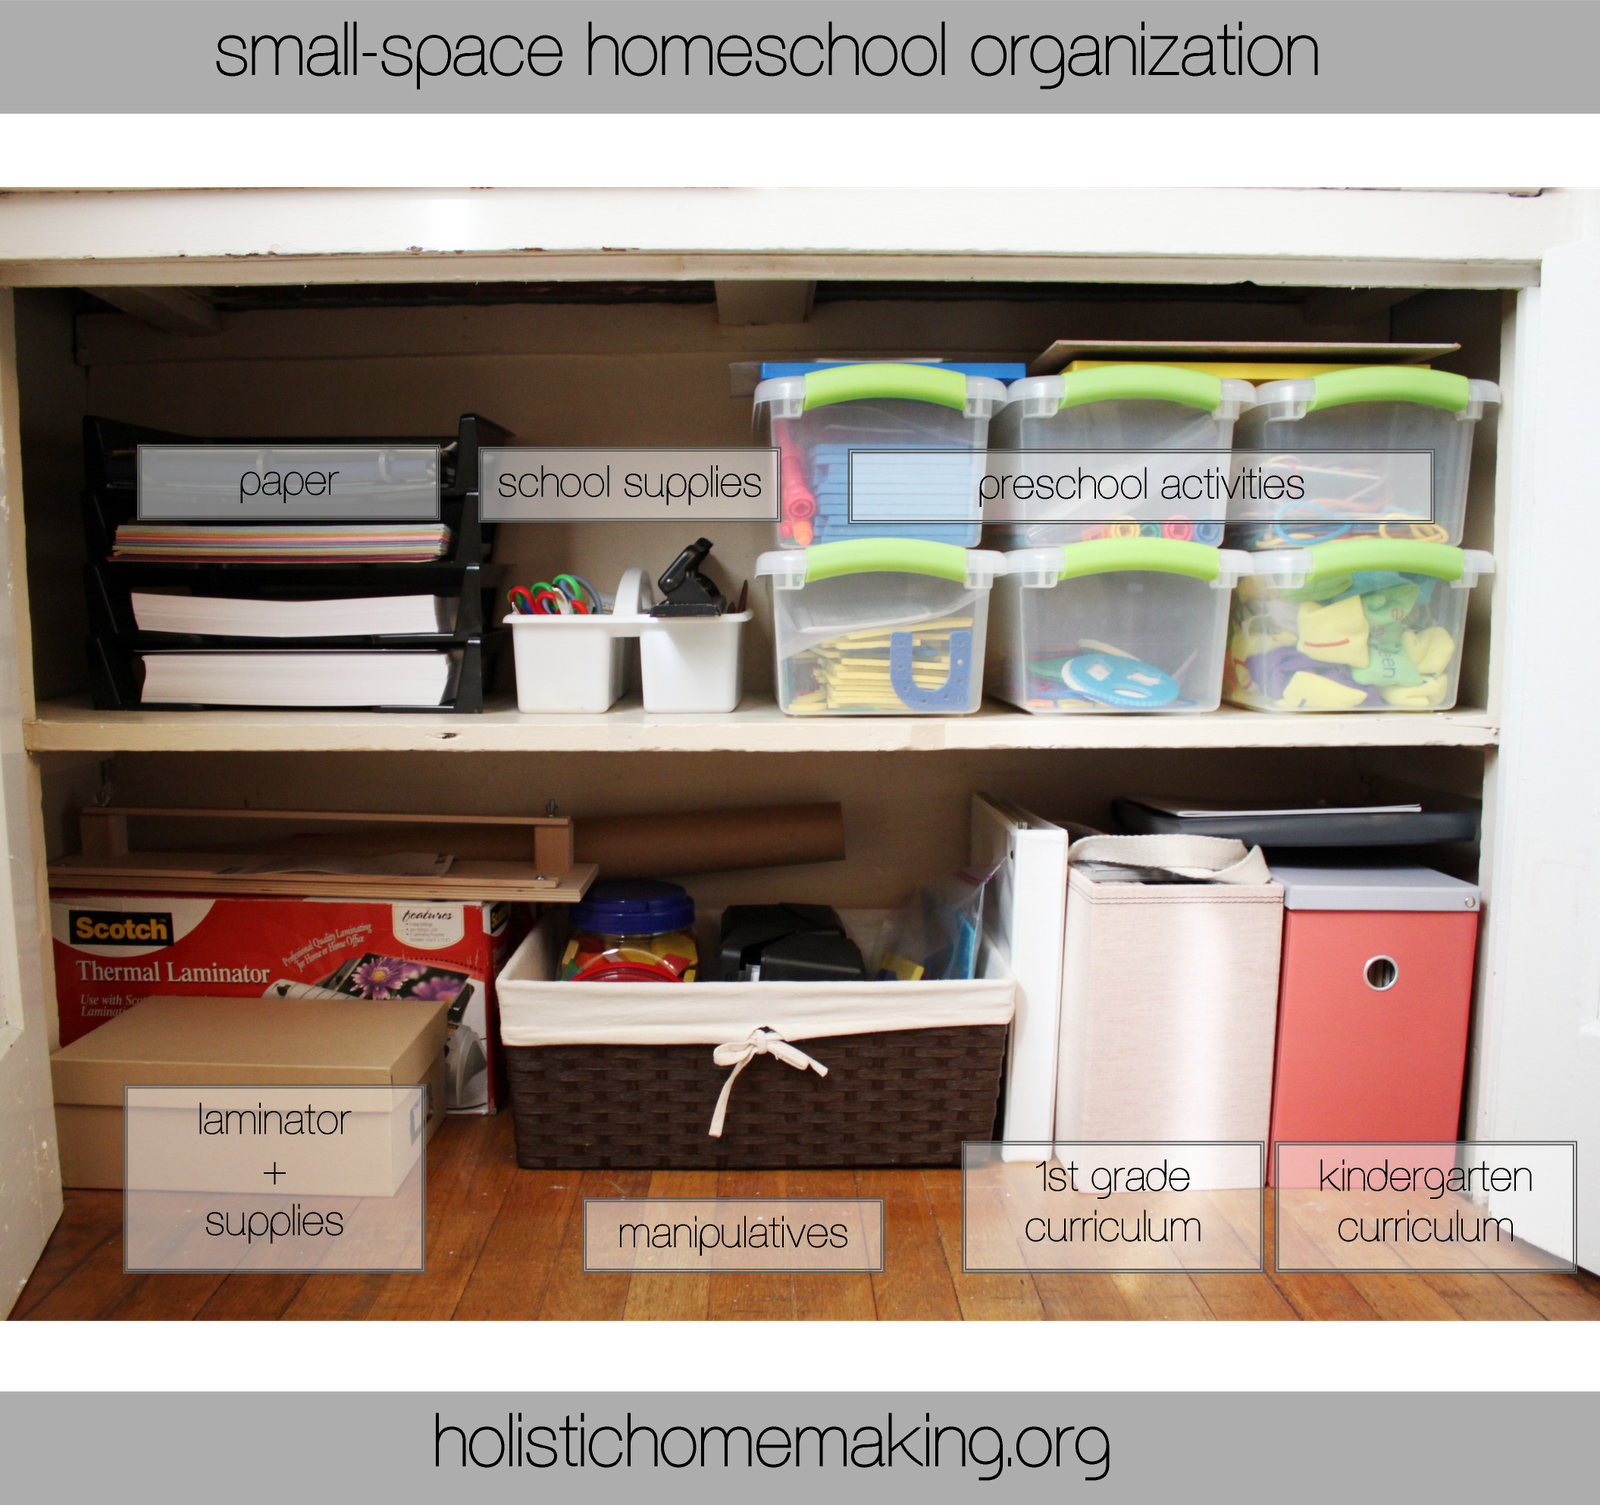 Small Space Organization small-space homeschool organization. must read her blog through